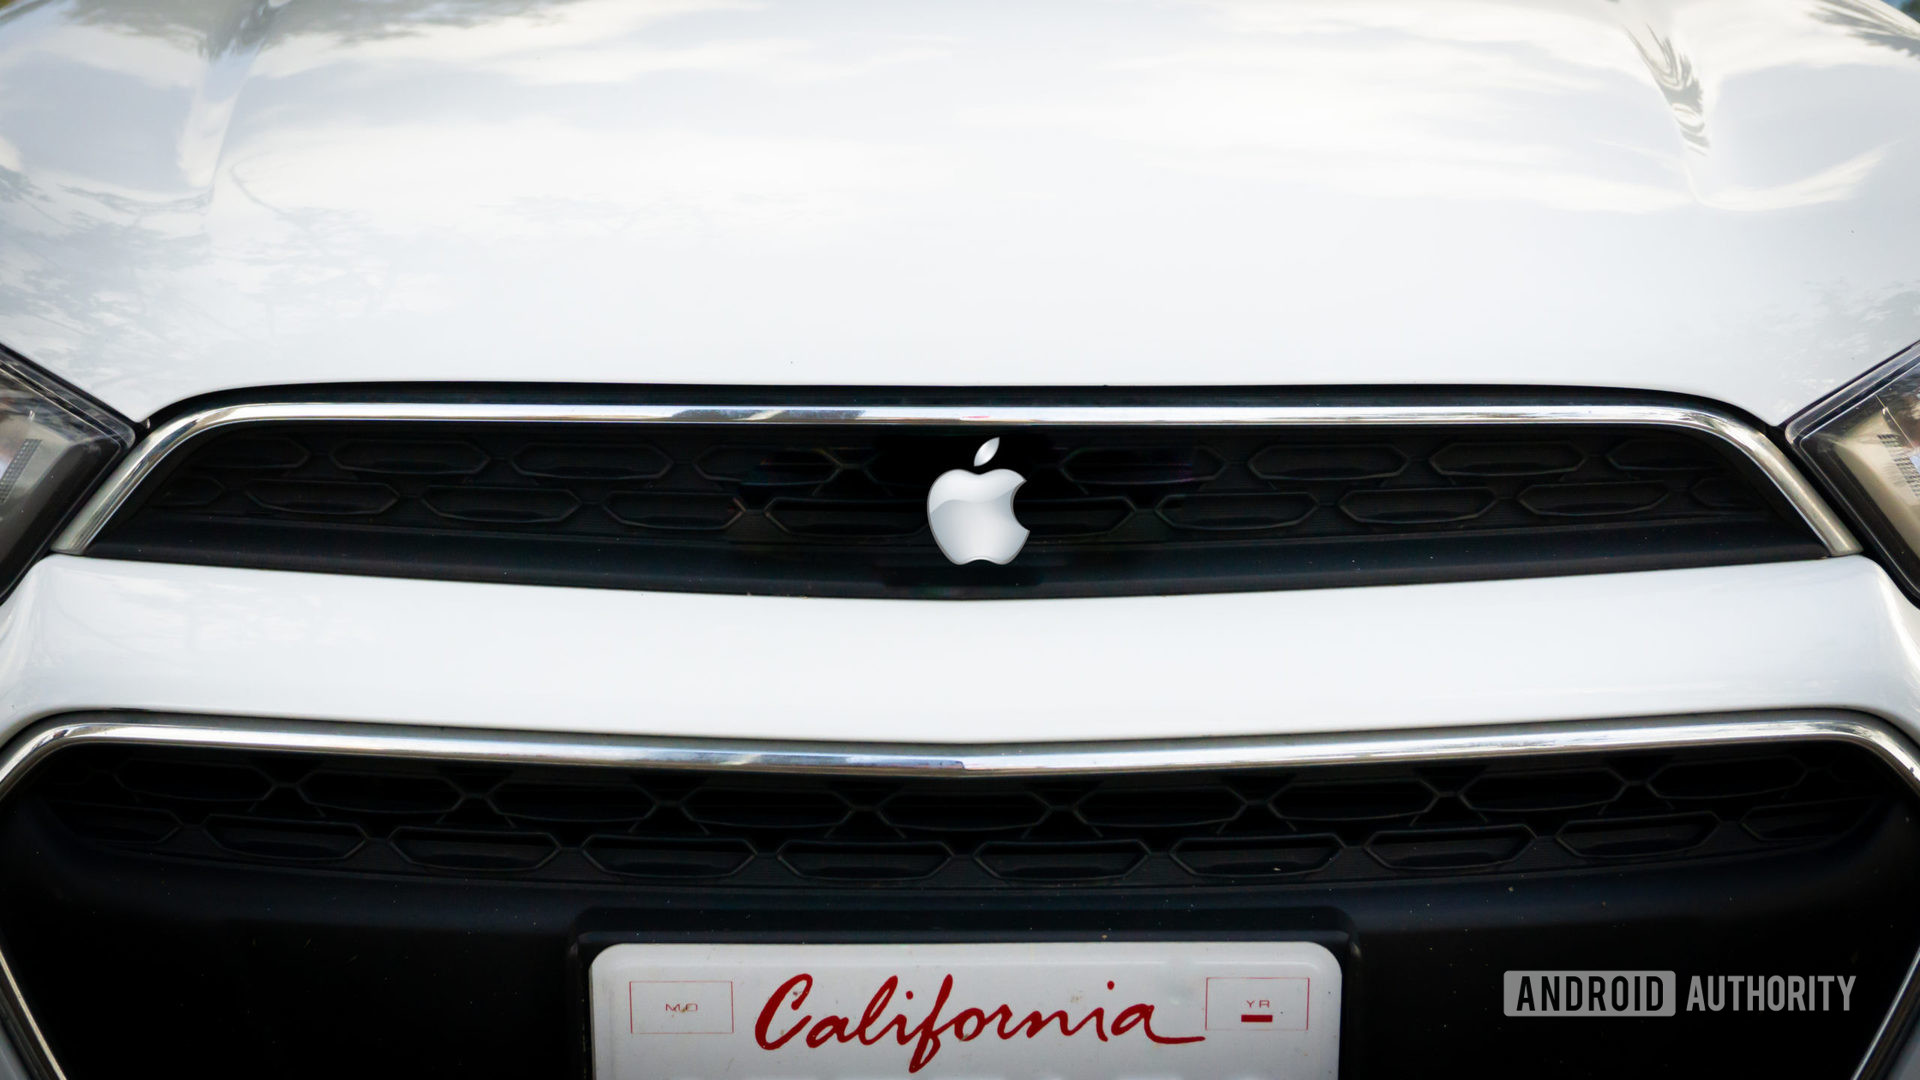 Apple Car Mockup showing front closeup of vehicle with the Apple logo.